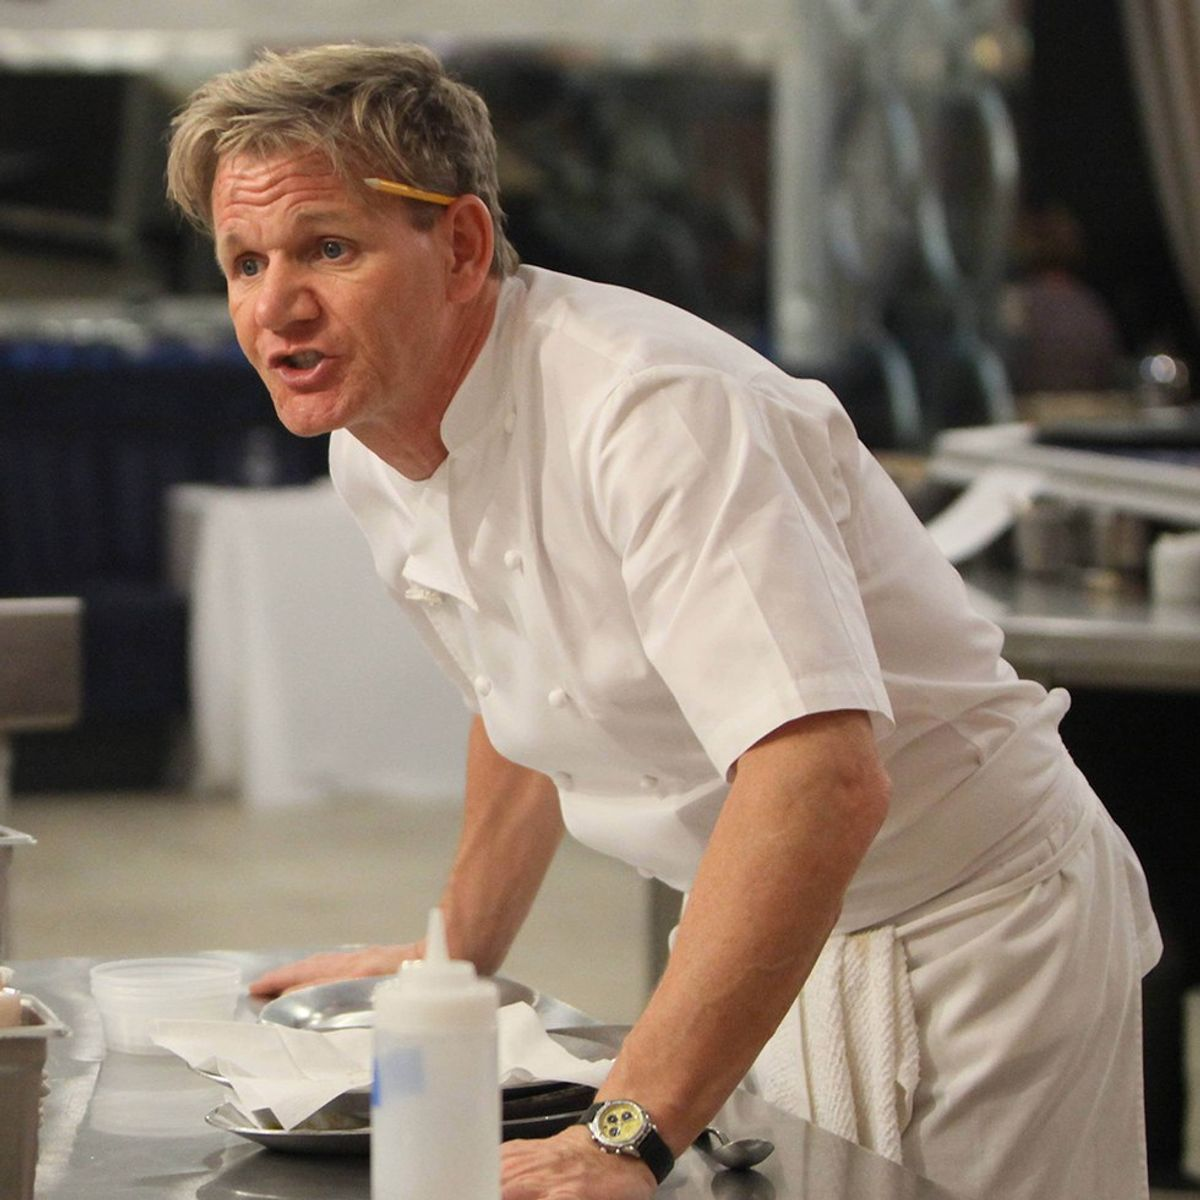 10 Stages Of Watching The Cooking Channel, As Told By Gordon Ramsay